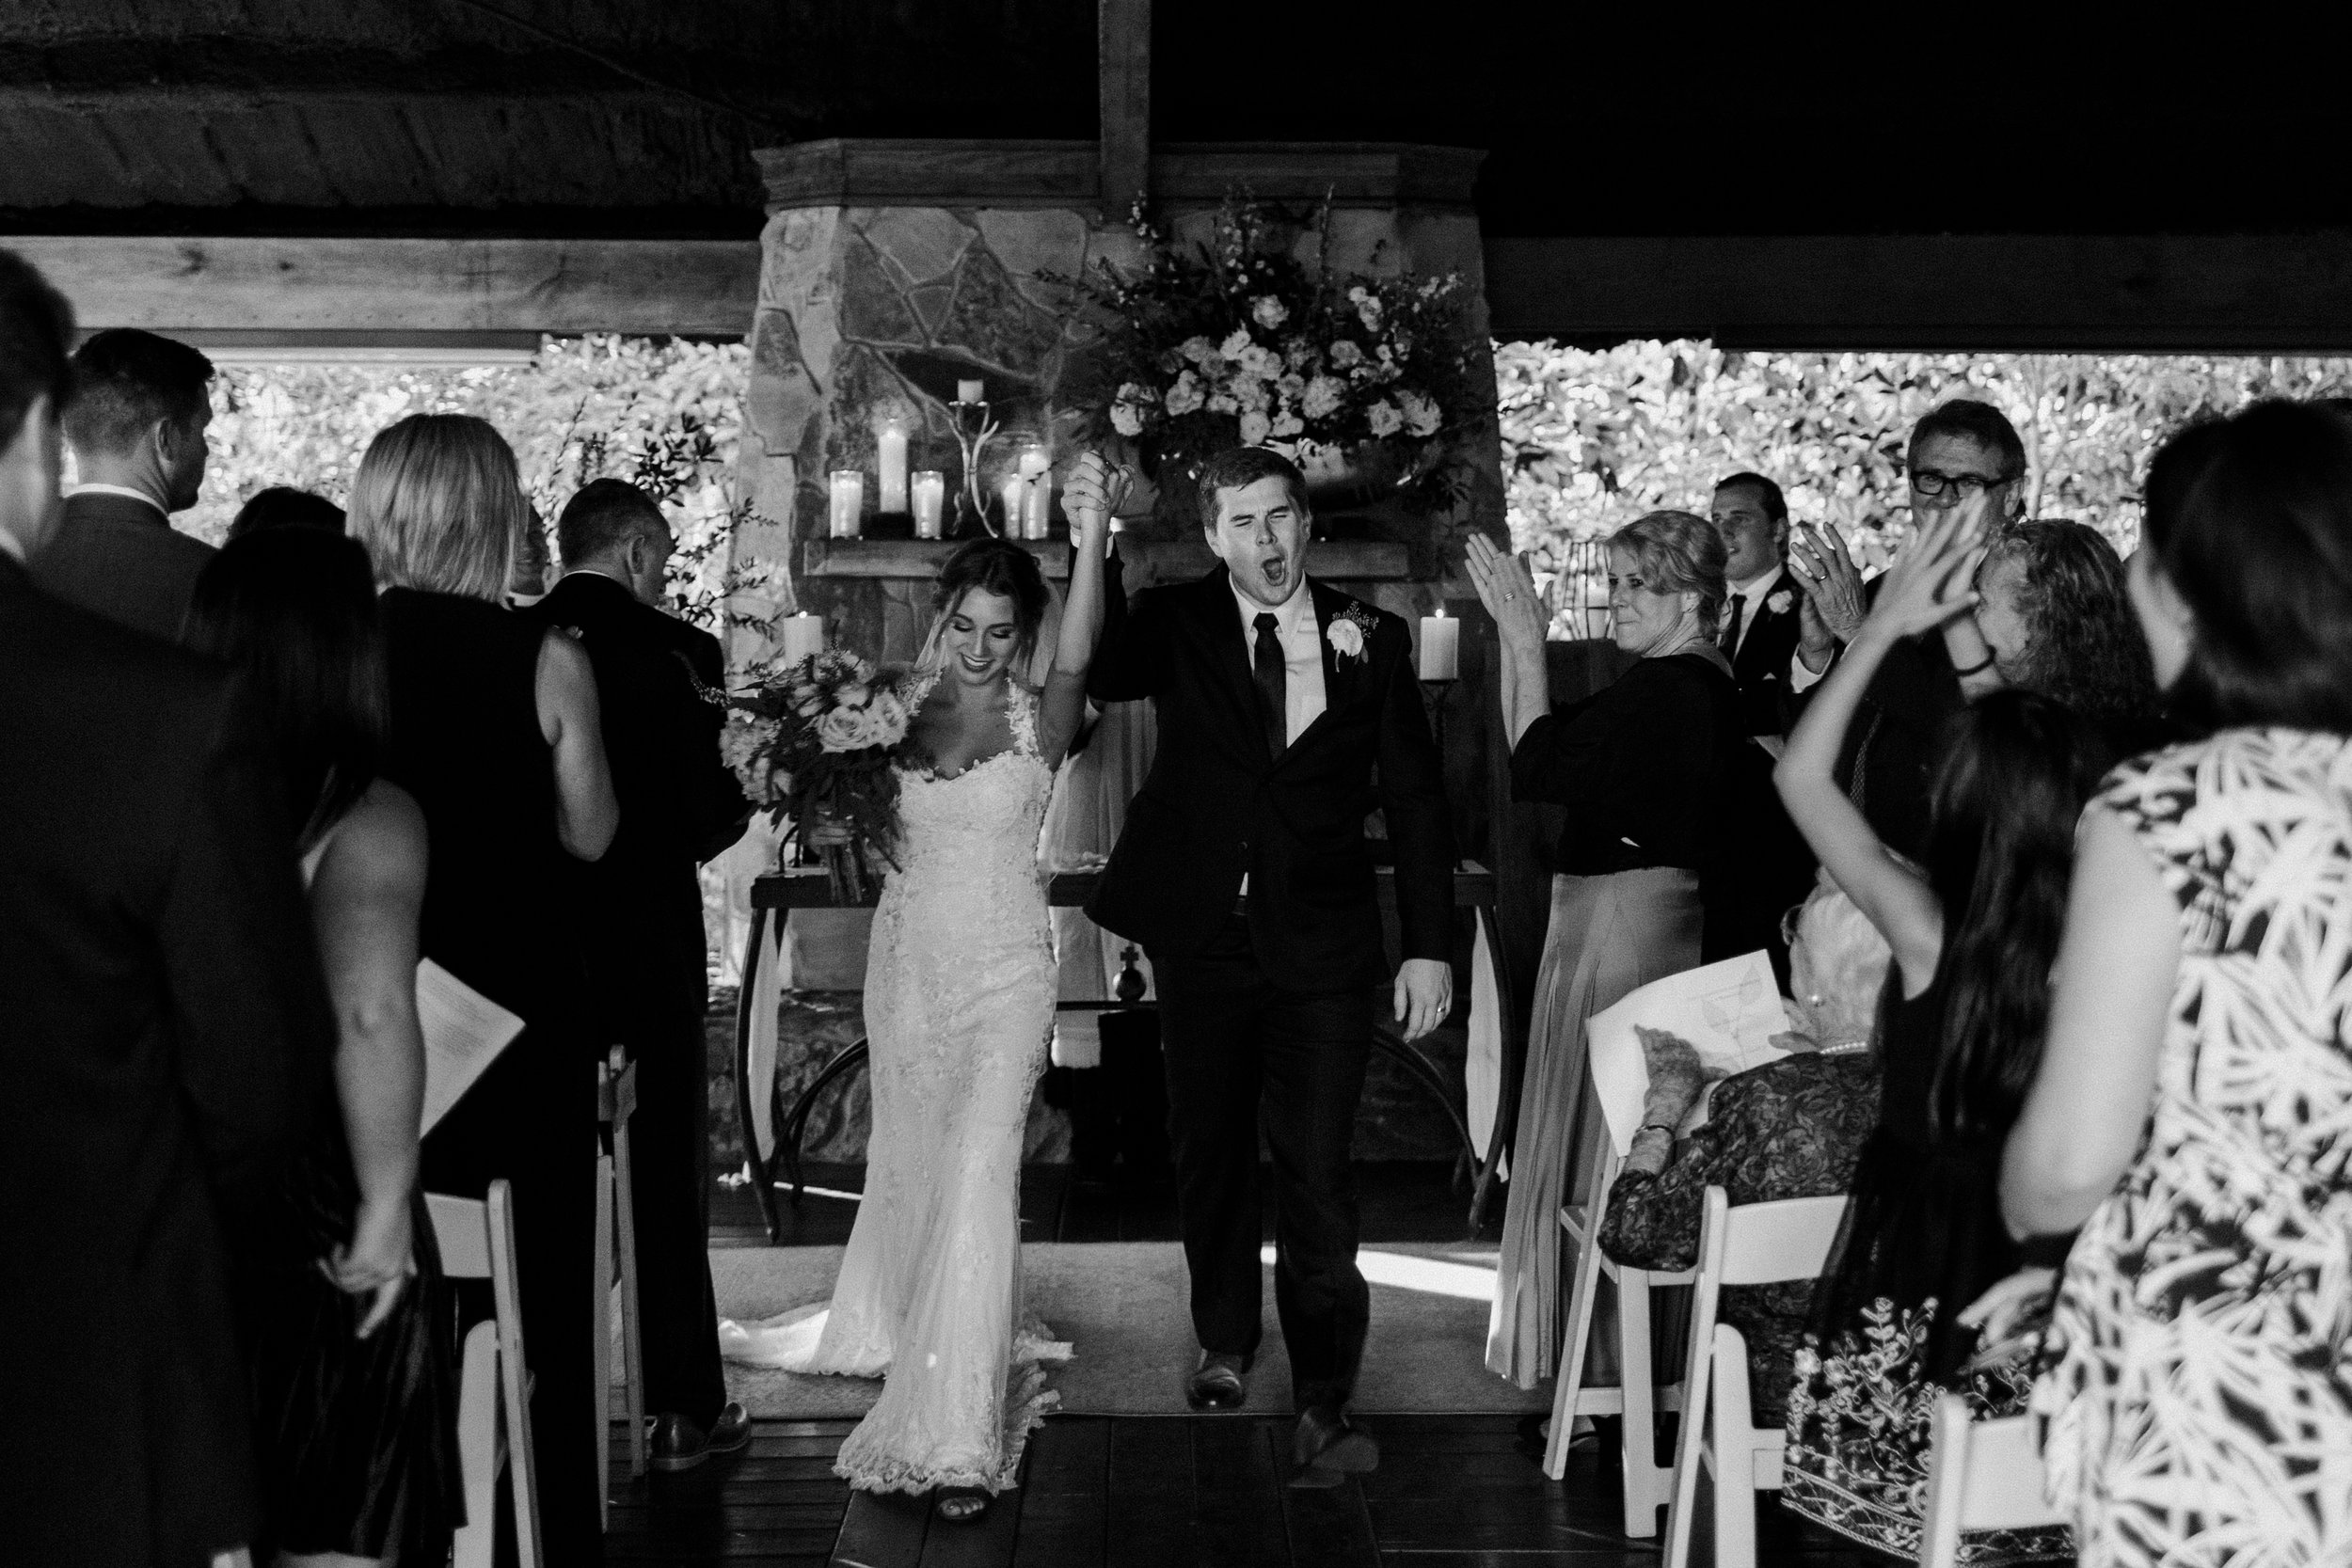 cailin+hails_destination_wedding_fairhope_daphne_mobile_alabama_madisonrylee_0099.jpg